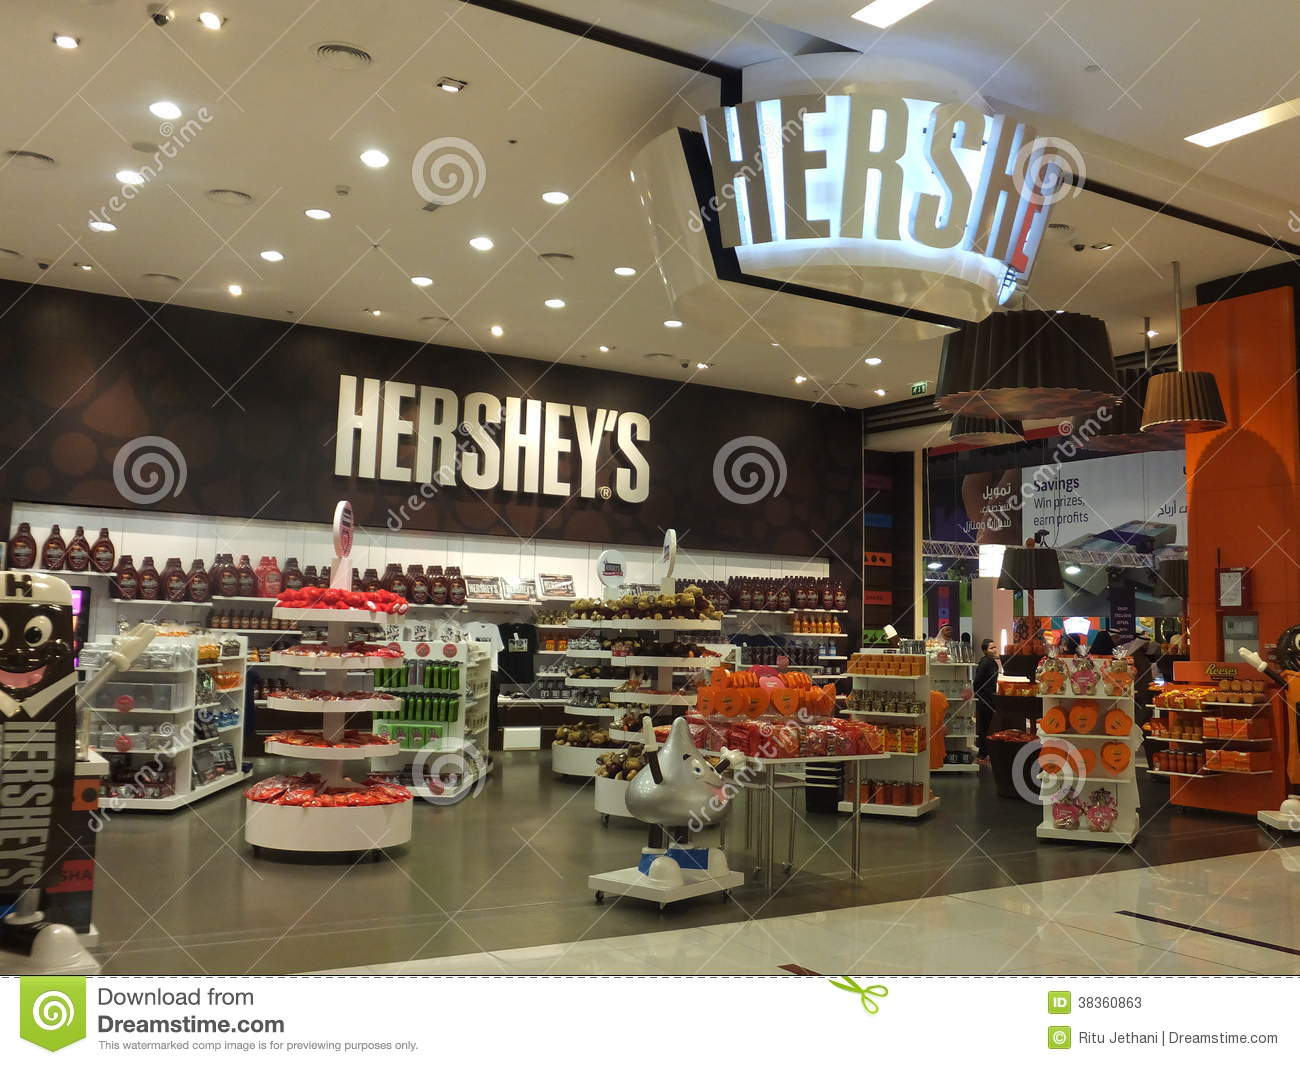 Cherry Drive Hershey, PA When shopping for the perfect gift or decoration for your home, we offer one of the area's largest gift shops with an .